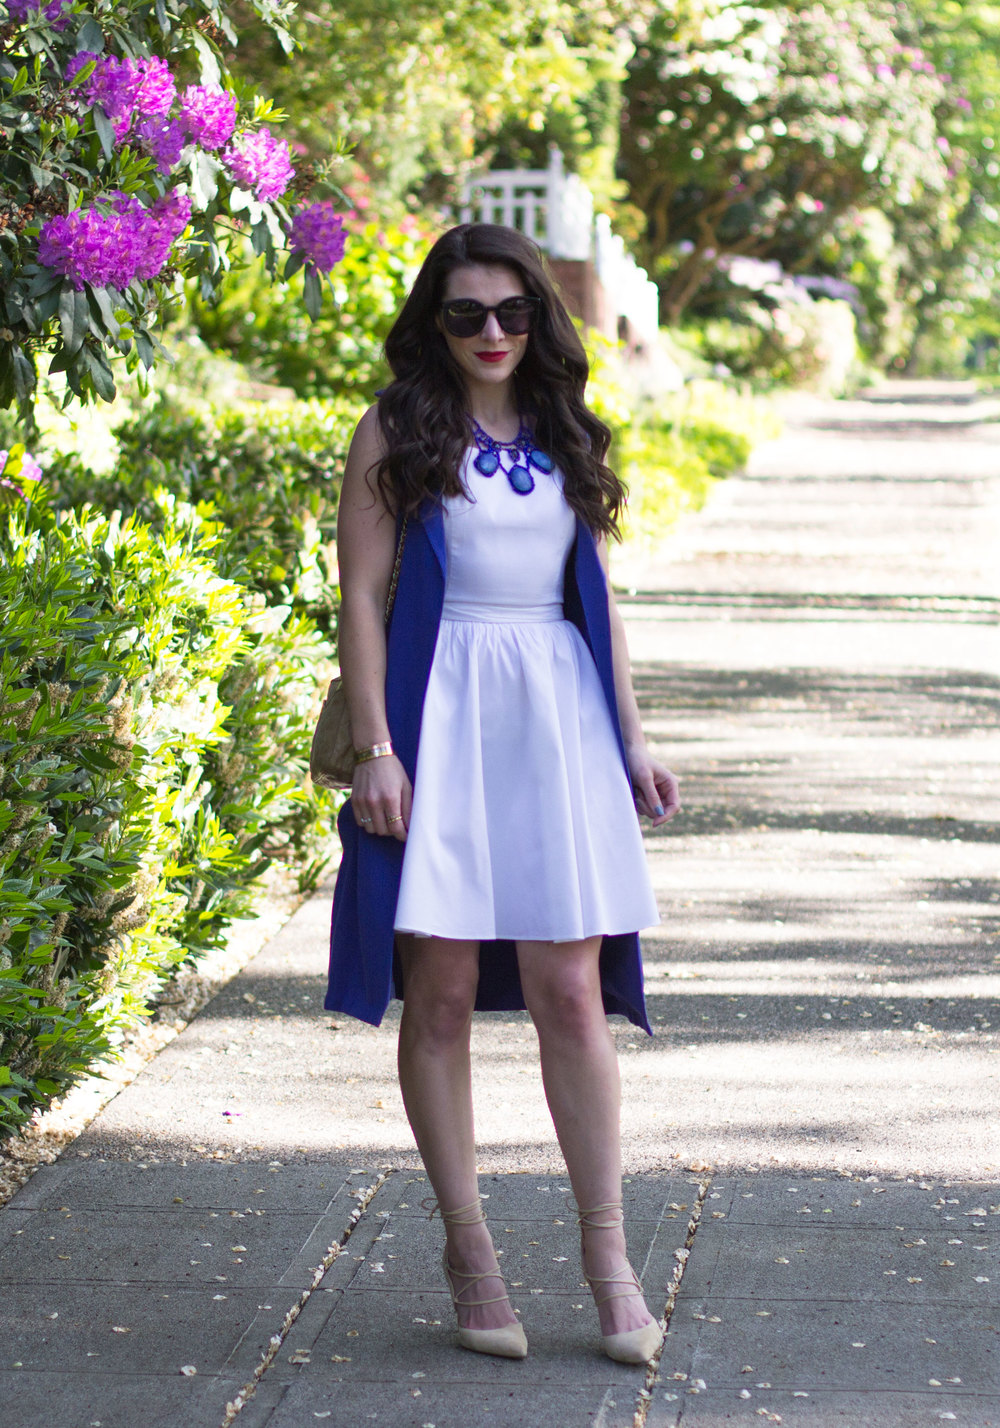 Cute Summer Work Outfit Ideas, How To Transition Your Summer Dress from Day to Night, Sam Edelman Dayna Lace Up Pumps, Vintage Chanel Bag.